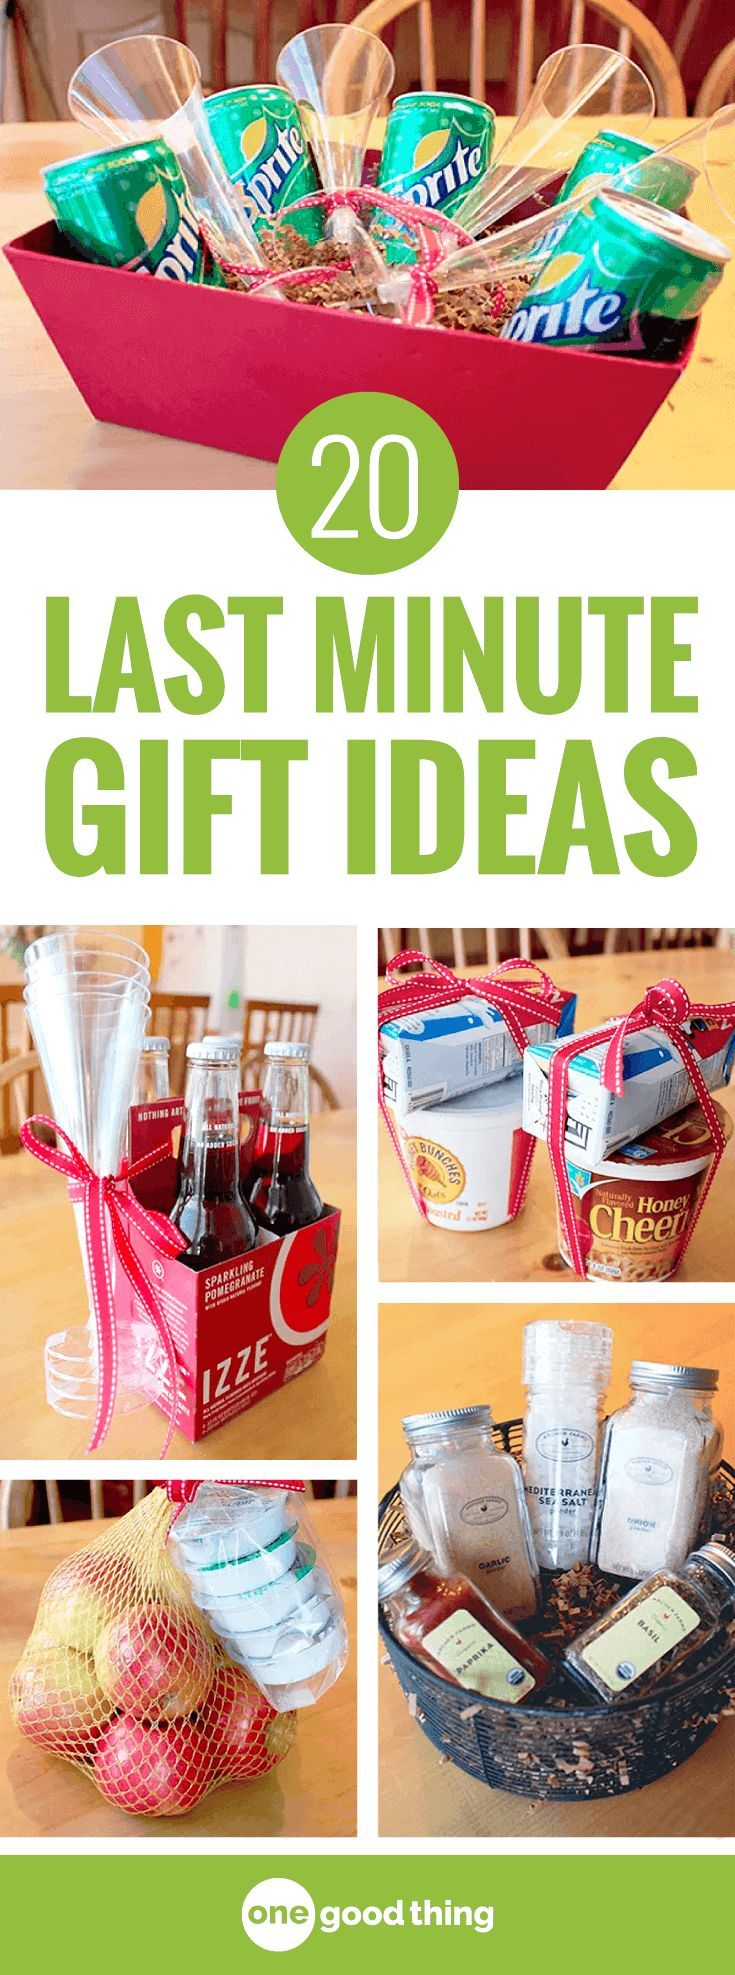 20 simple lastminute gift ideas from your grocery store